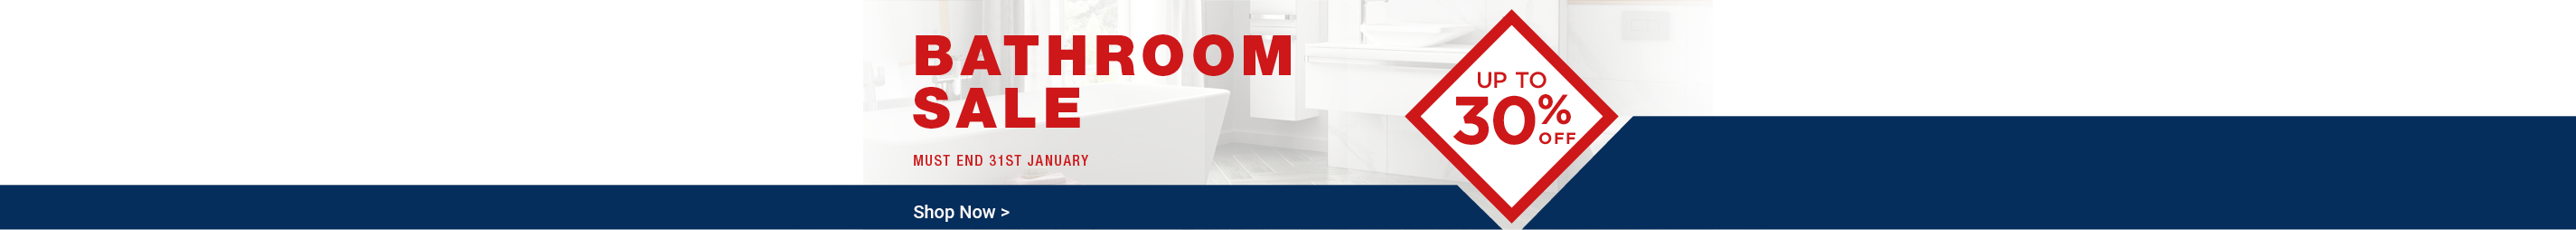 Save up to 30% in the Bathroom Sale